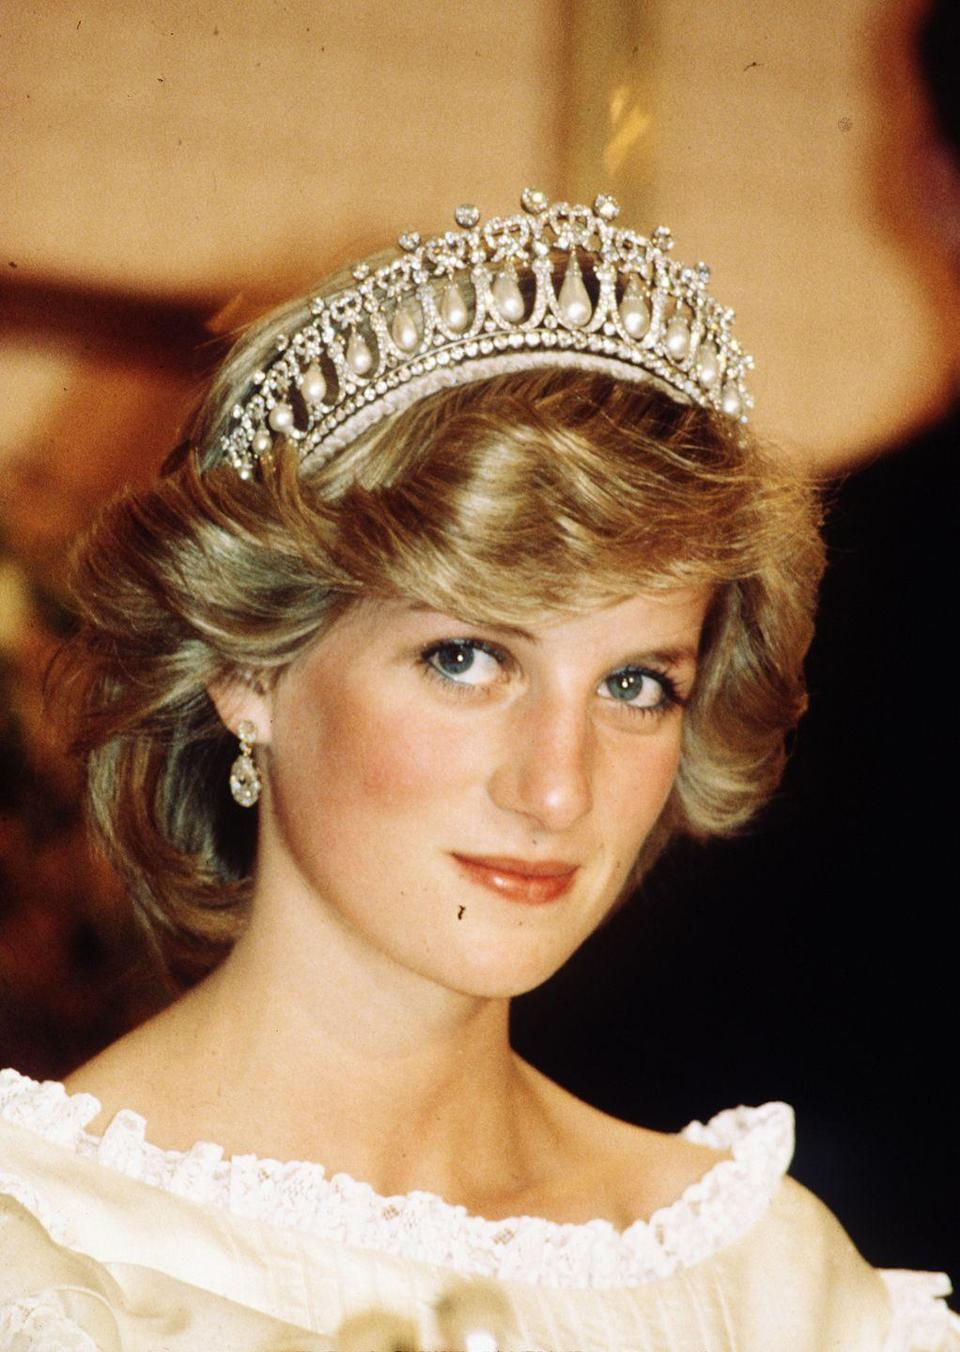 """<p>While visiting New Zealand, Diana chose to wear the famed Cambridge <a href=""""https://www.townandcountrymag.com/society/tradition/a10302981/cambridge-love-knot-tiara/"""" rel=""""nofollow noopener"""" target=""""_blank"""" data-ylk=""""slk:Lover's Knot"""" class=""""link rapid-noclick-resp"""">Lover's Knot</a> tiara. The headpiece dates back to Queen Mary, who commissioned the tiara from jewelry house Garrard in 1914. The tiara was then passed down to Queen Elizabeth II, who then lent it to Diana. Now, the Duchess of Cambridge is often spotted in the intricate, beautiful headpiece. </p>"""